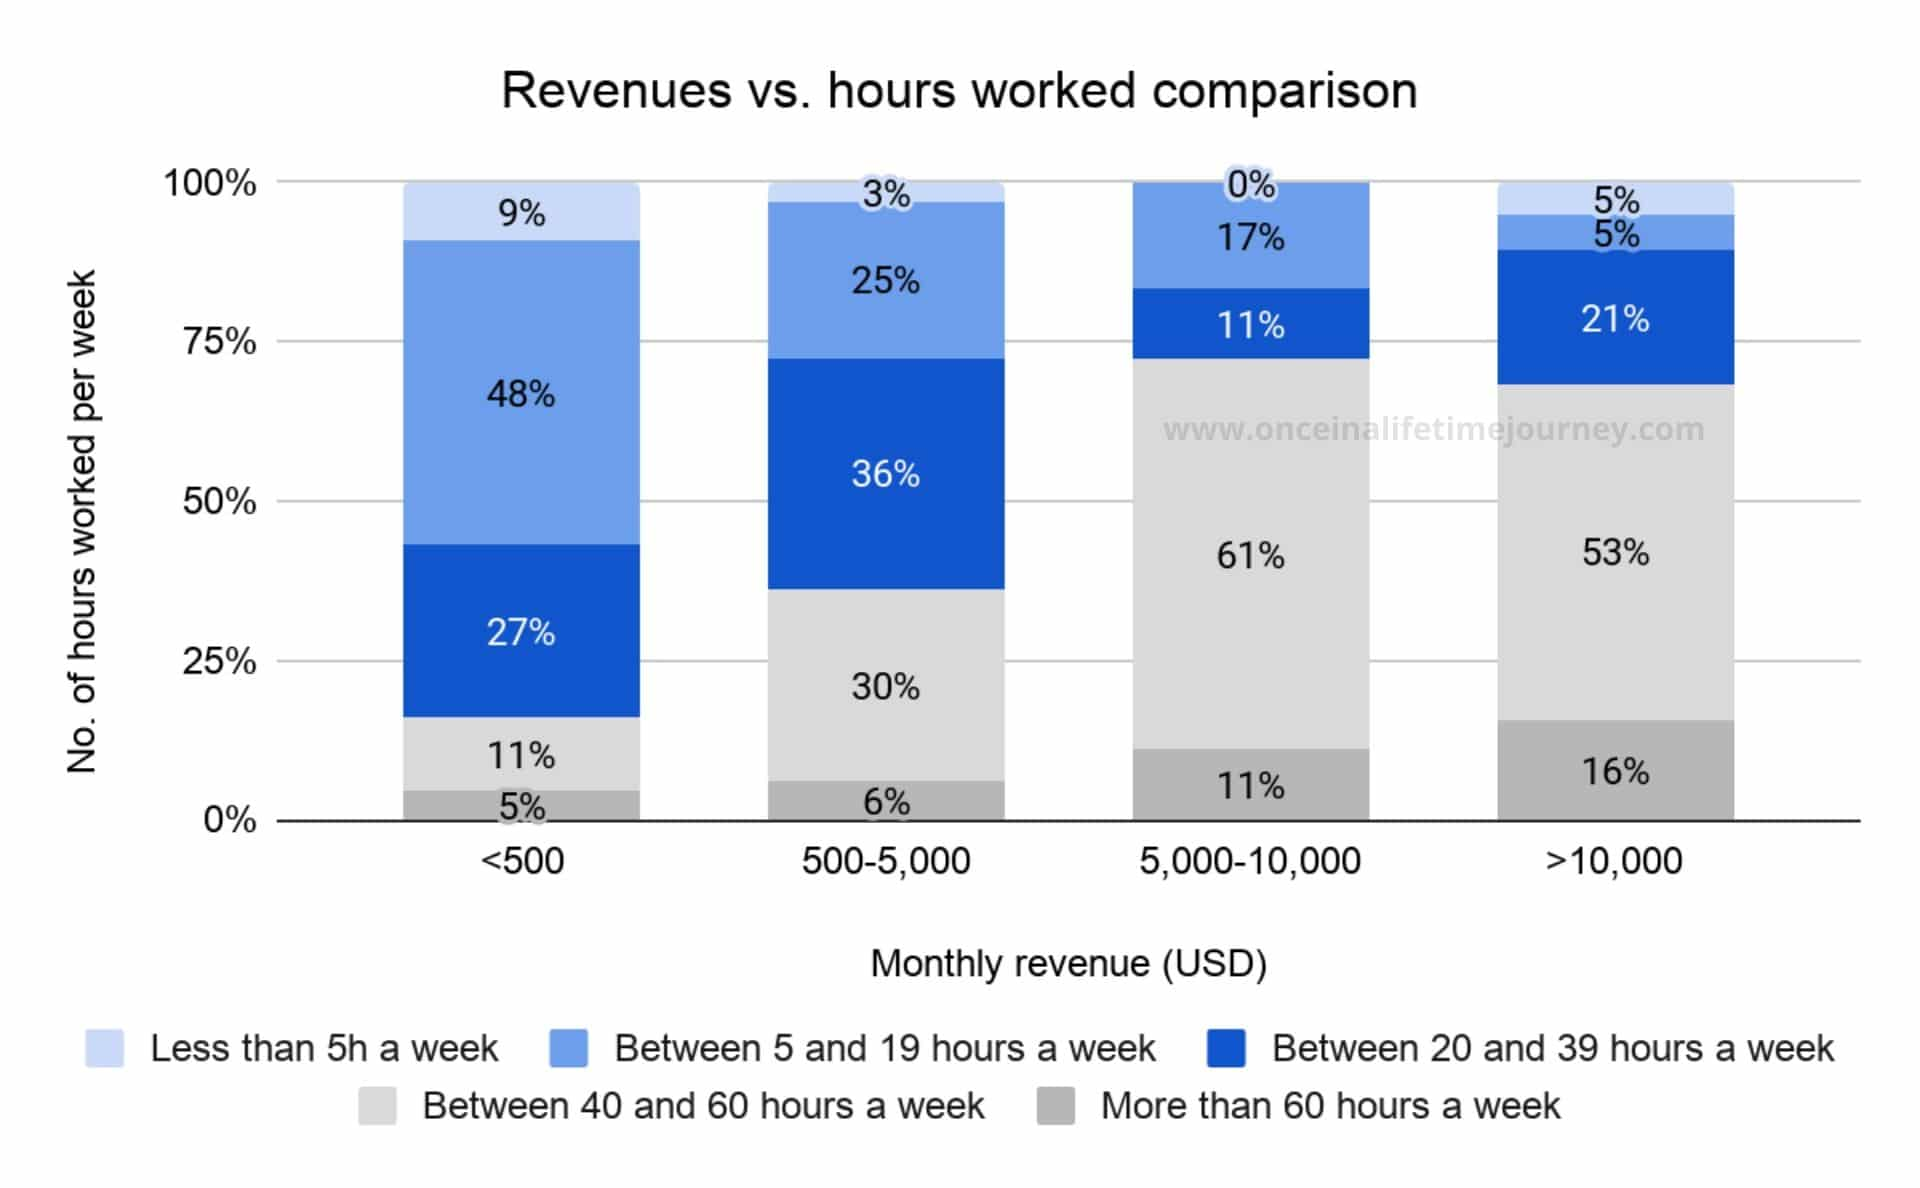 Comparison of revenues vs hours worked